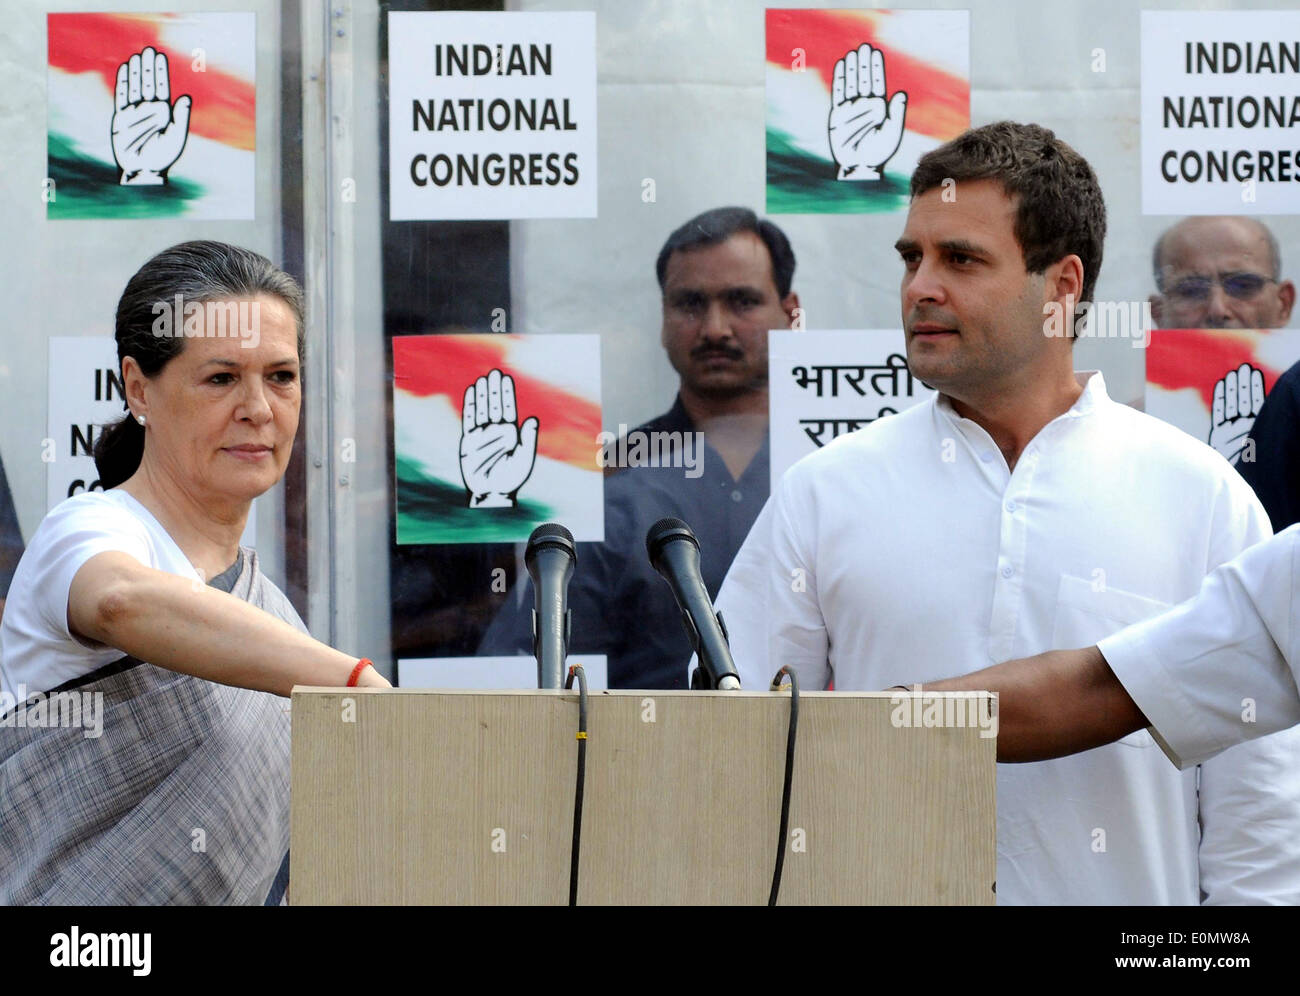 New Delhi, India. 16th May, 2014. Vice President of Indian National Congress party Rahul Gandhi (R) and his mother and party chief Sonia Gandhi address the media outside the party headquarters in New Delhi, India, on May 16, 2014. Rahul Gandhi Friday accepted responsibility for the ruling Congress party's worst ever defeat in India's general elections, as his mother and party chief Sonia Gandhi congratulated the main opposition Bharatiya Janata Party (BJP) on its landslide victory. Credit:  Partha Sarkar/Xinhua/Alamy Live News - Stock Image